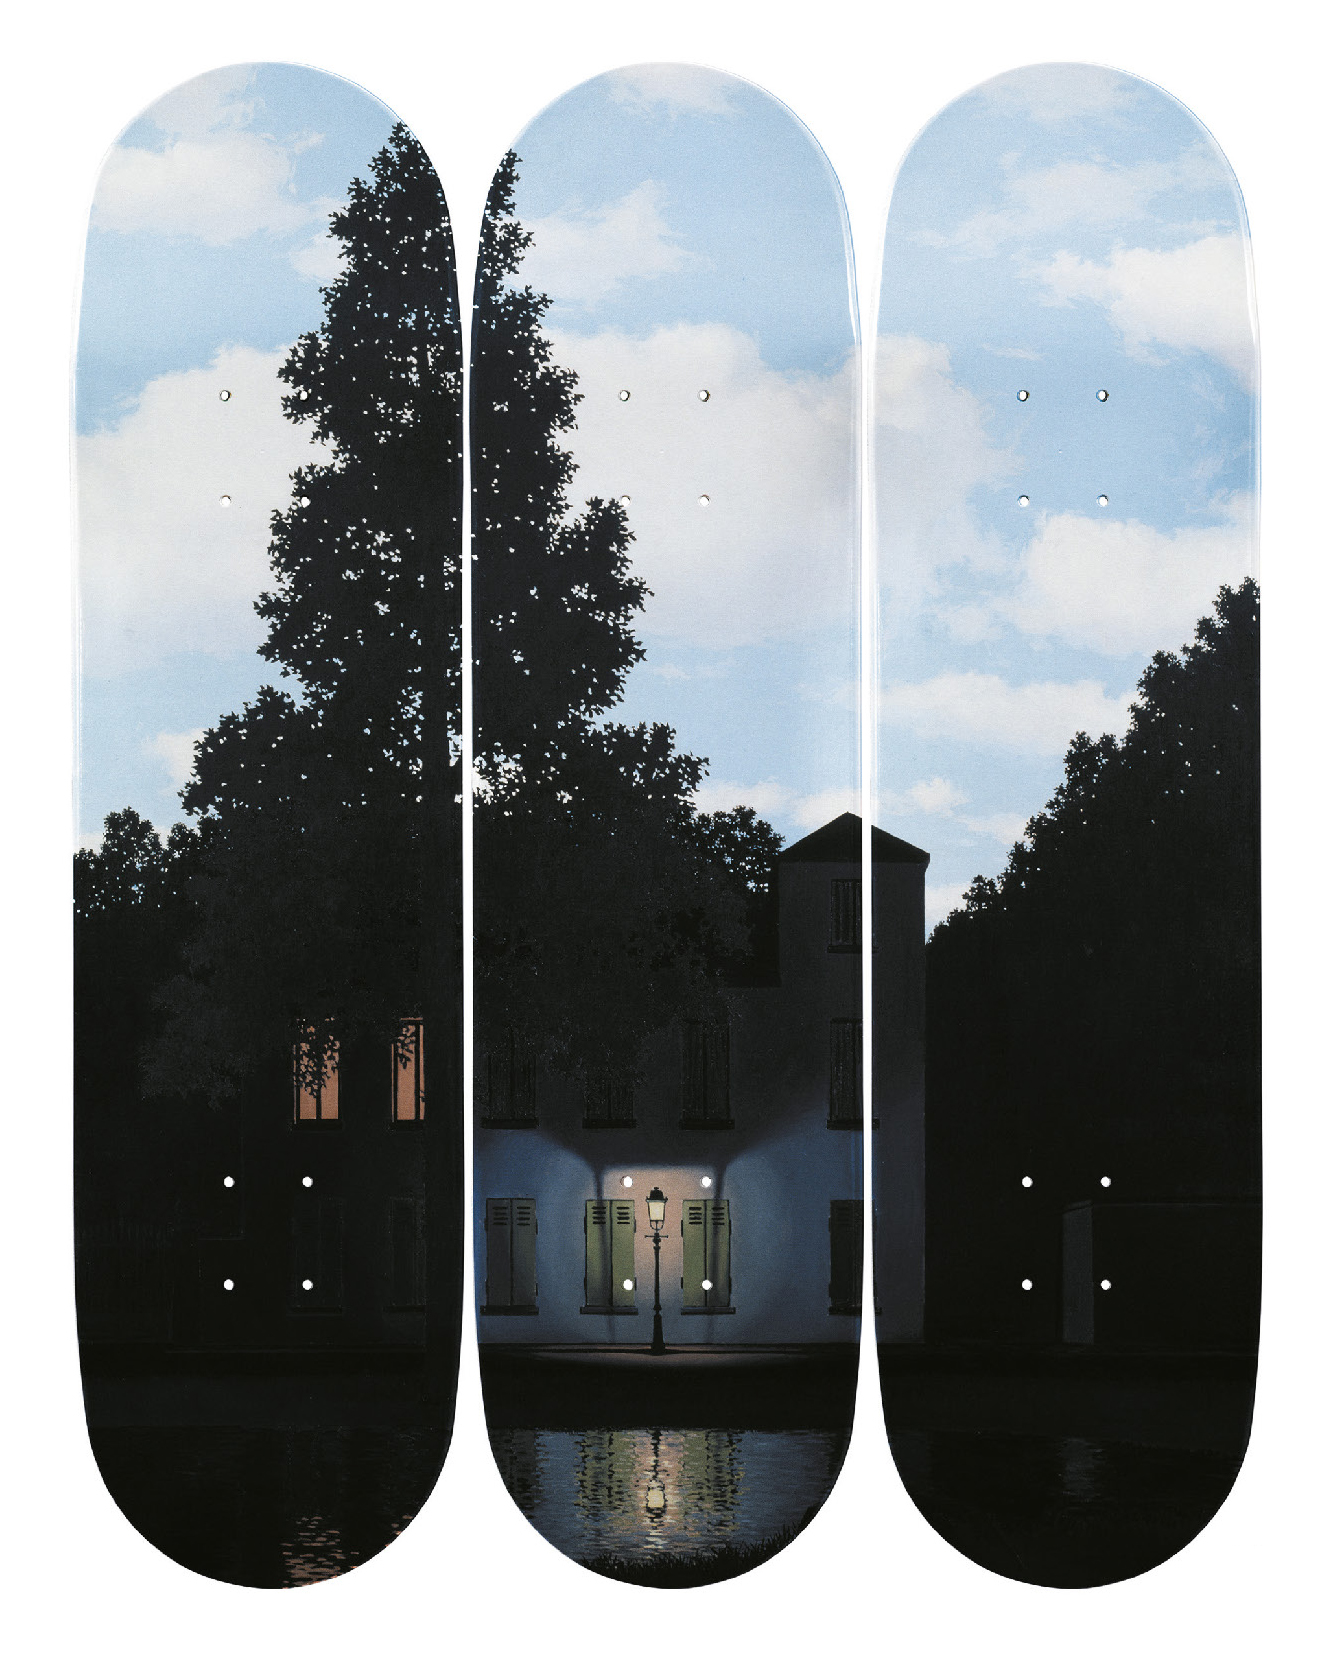 Lot 59 - The Skateroom L'empire des lumières 3 skateboard - Edition of 250 80 x 20 cm each. [...]